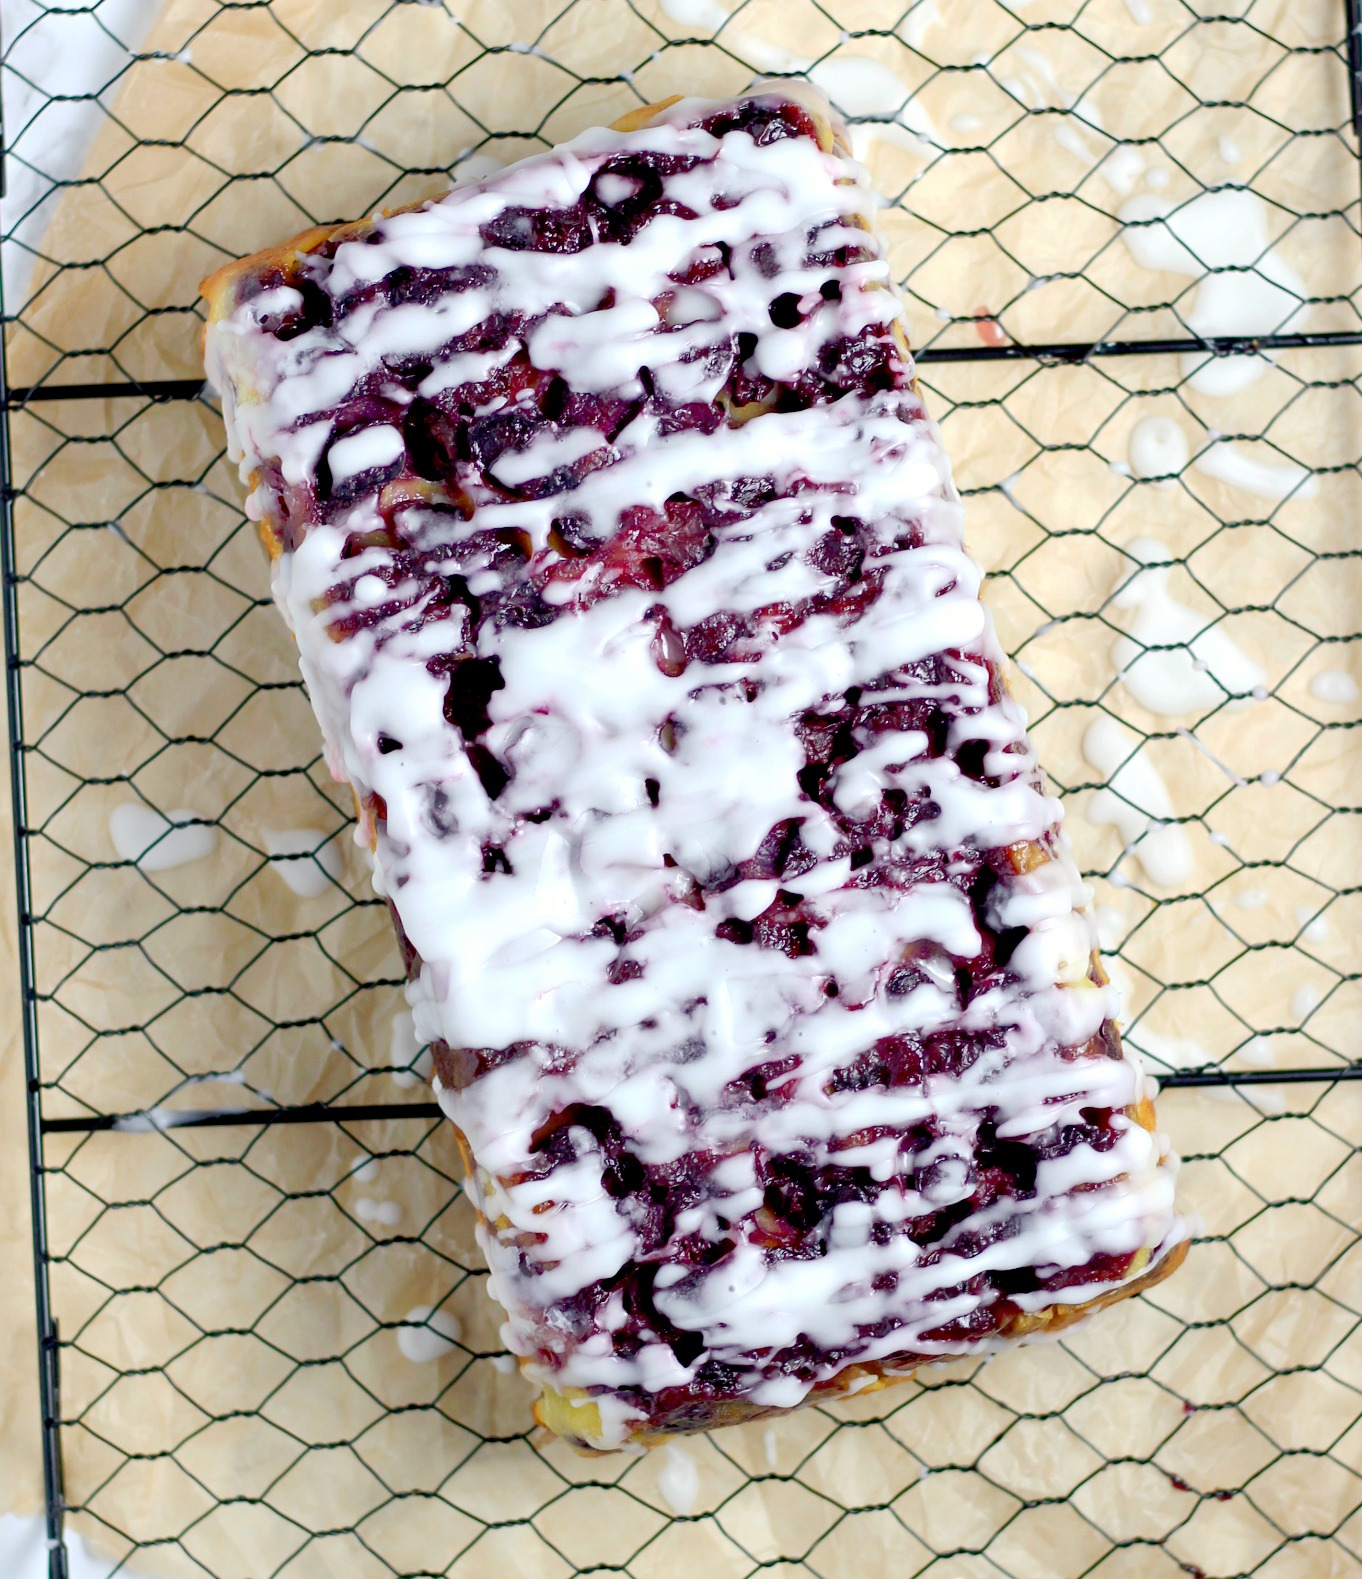 cooling rack with a loaf of blueberry upside down bread with a powdered sugar glaze